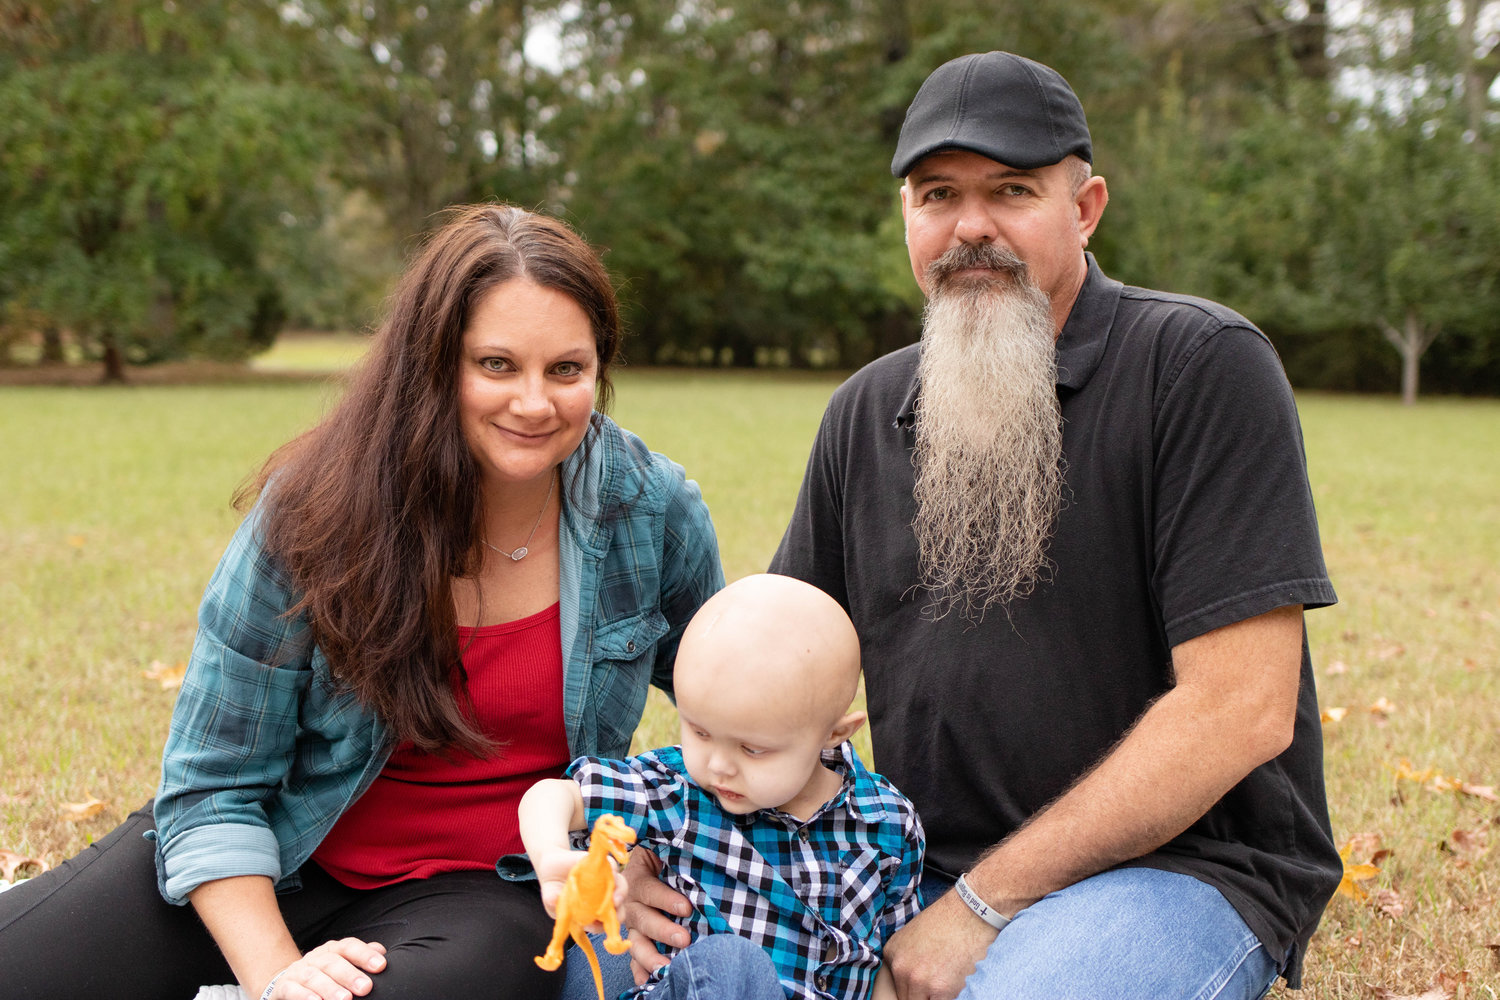 Wyatt Spann and his parents, Greg and Christy Spann, are seen in a photo shoot by Brittany Hackleman in September.